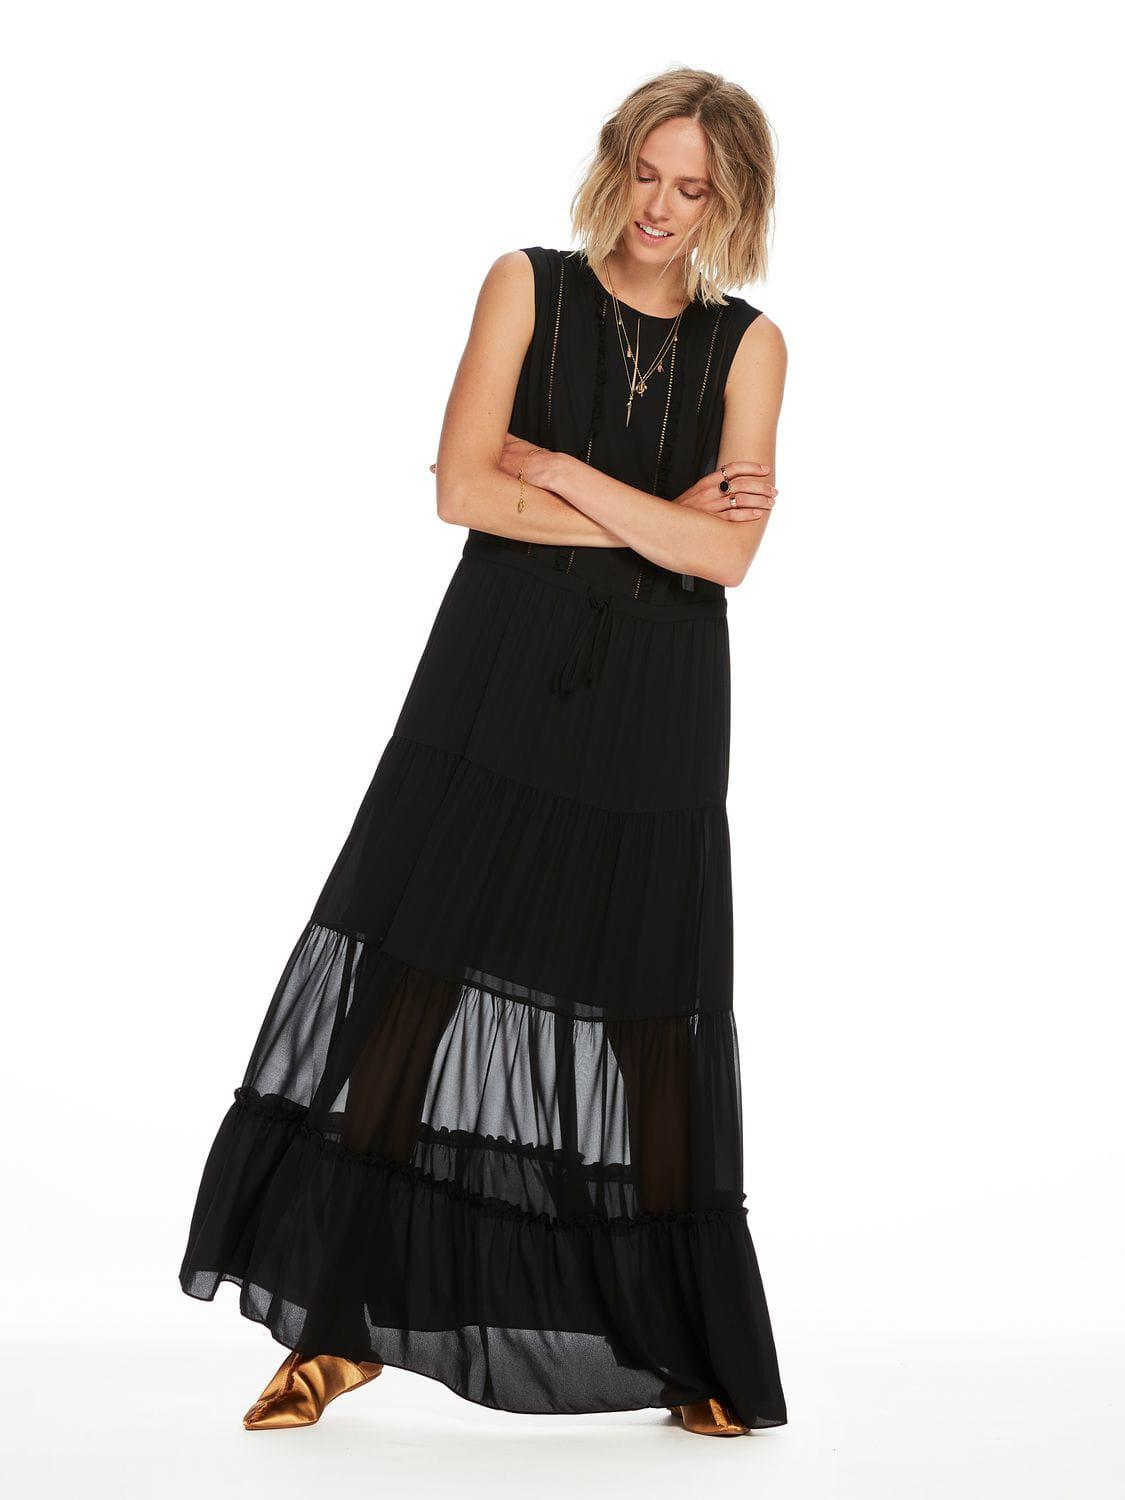 Buy Cheap Many Kinds Of With Credit Card For Sale Womens Sleeveless Silky Feel Maxi Sheer Inserts and Ruff Dress Scotch & Soda Sast Cheap Price OS6qIGbx